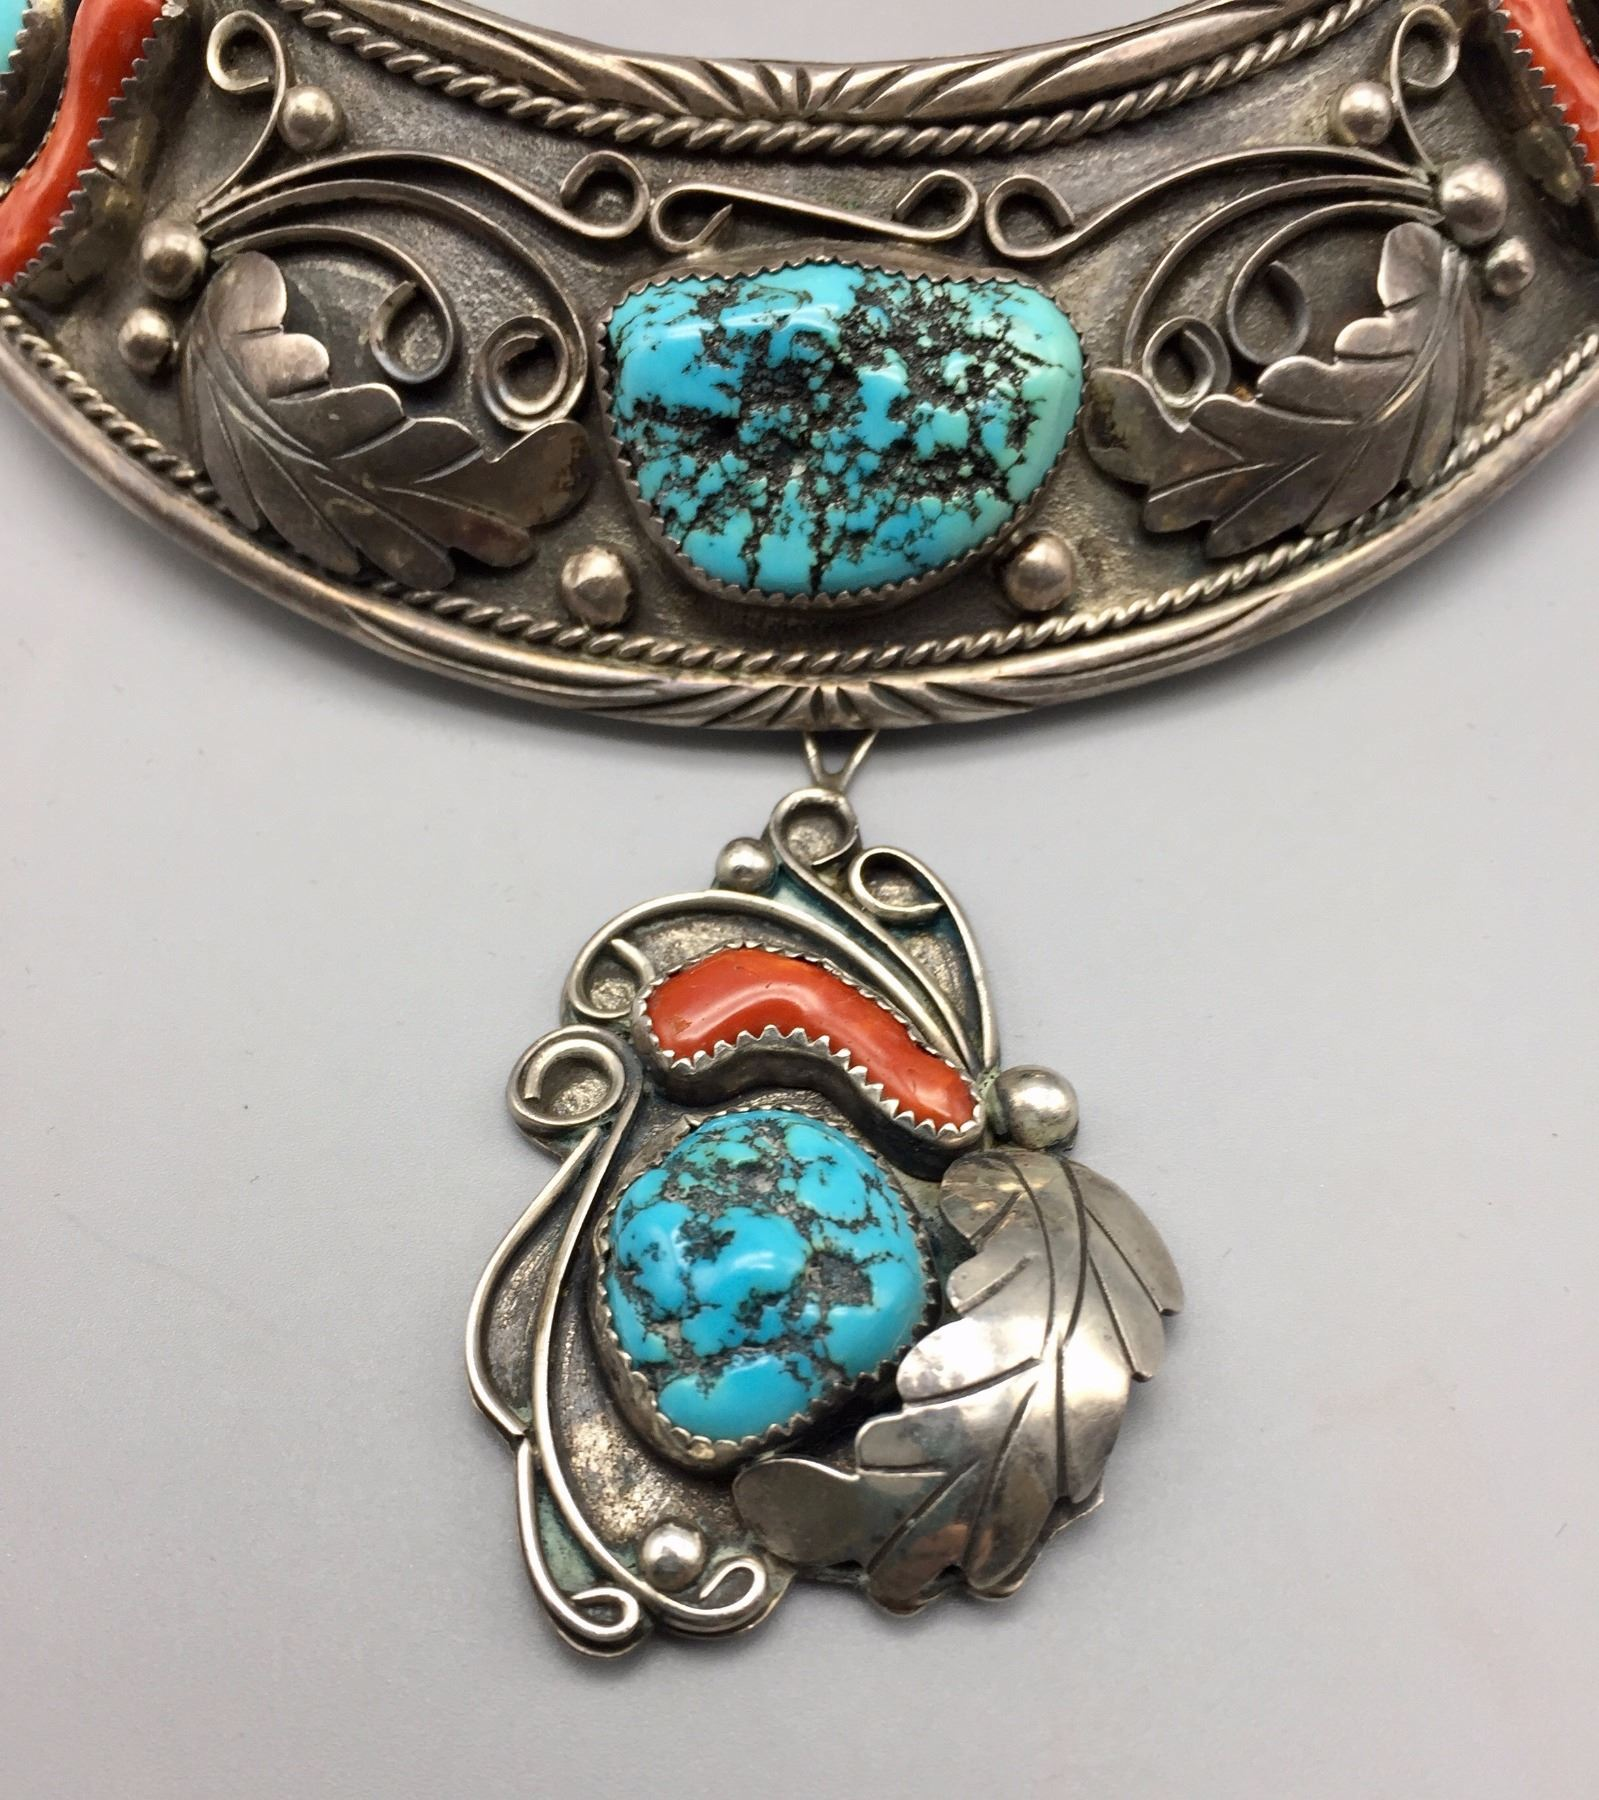 necklace handmade lady turquoise jewelry the gemstone store s boho bohemian natural pendant sterling southwestern navajo products vintage home silver